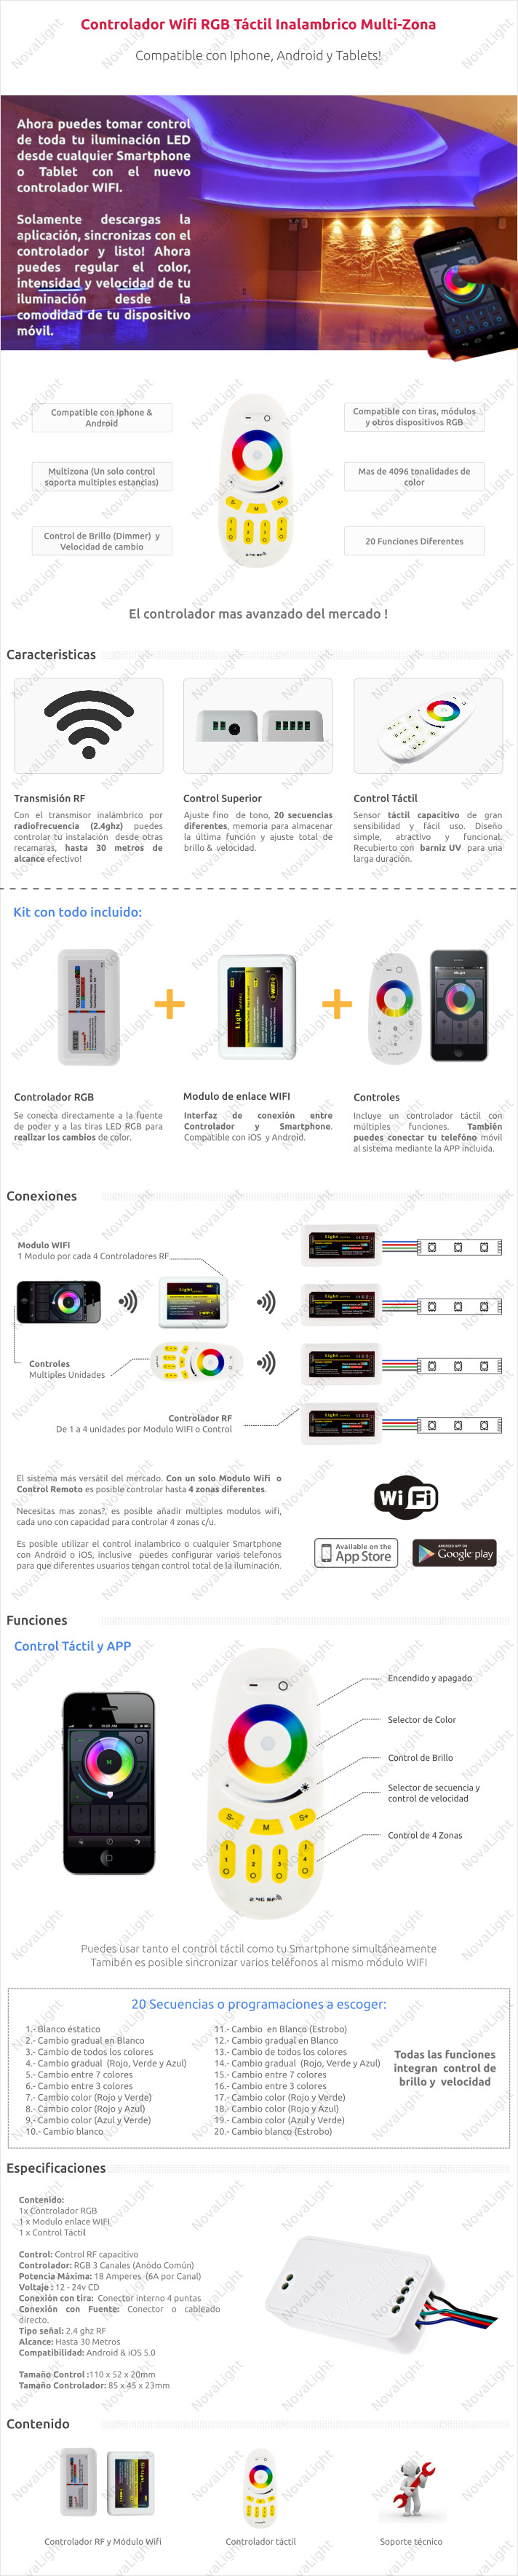 Descripción del controlador WIFI compatible con Iphone y Android